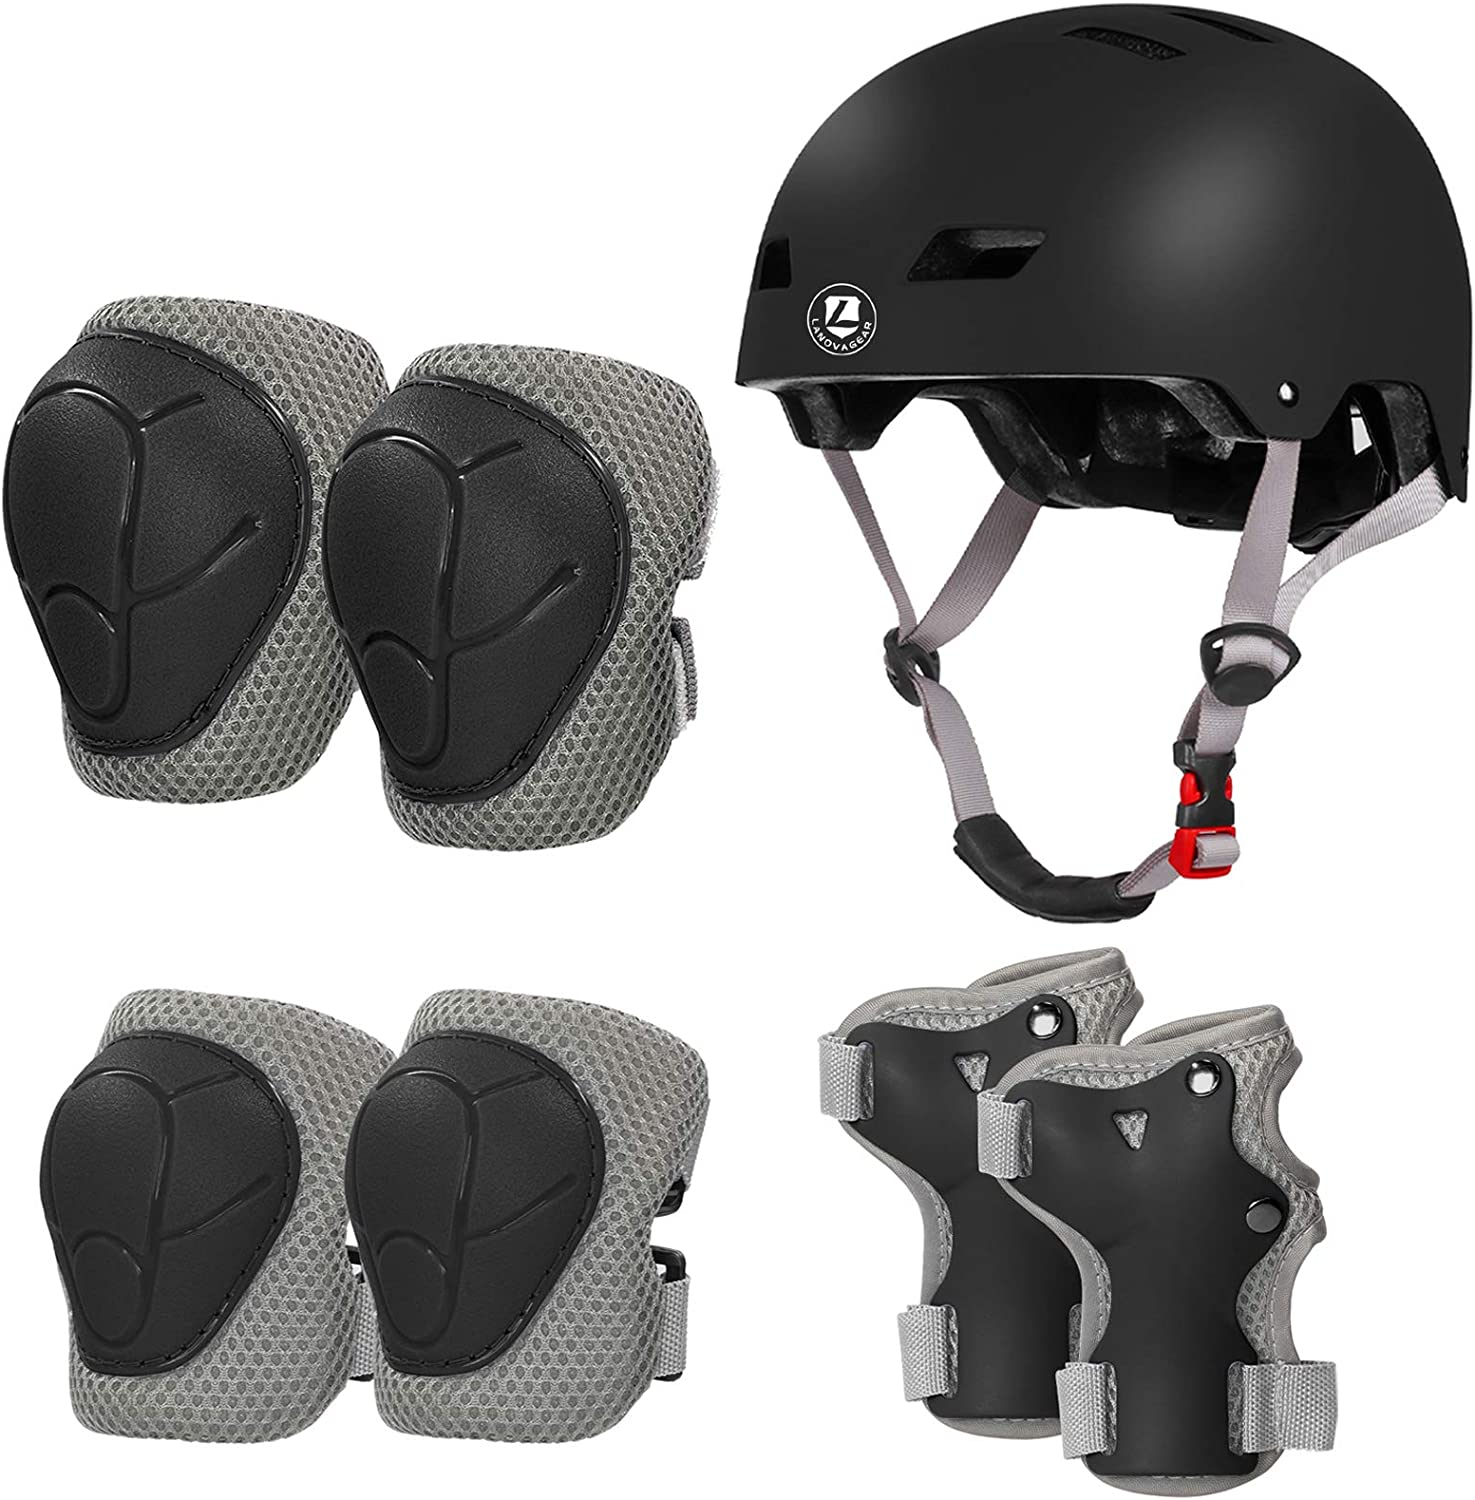 LANOVAGEAR Toddler Helmet Knee Elbow Pads and Wrist Guards Adjustable CPSC Kids Bike Helmet for Cycling Skateboard Scooter